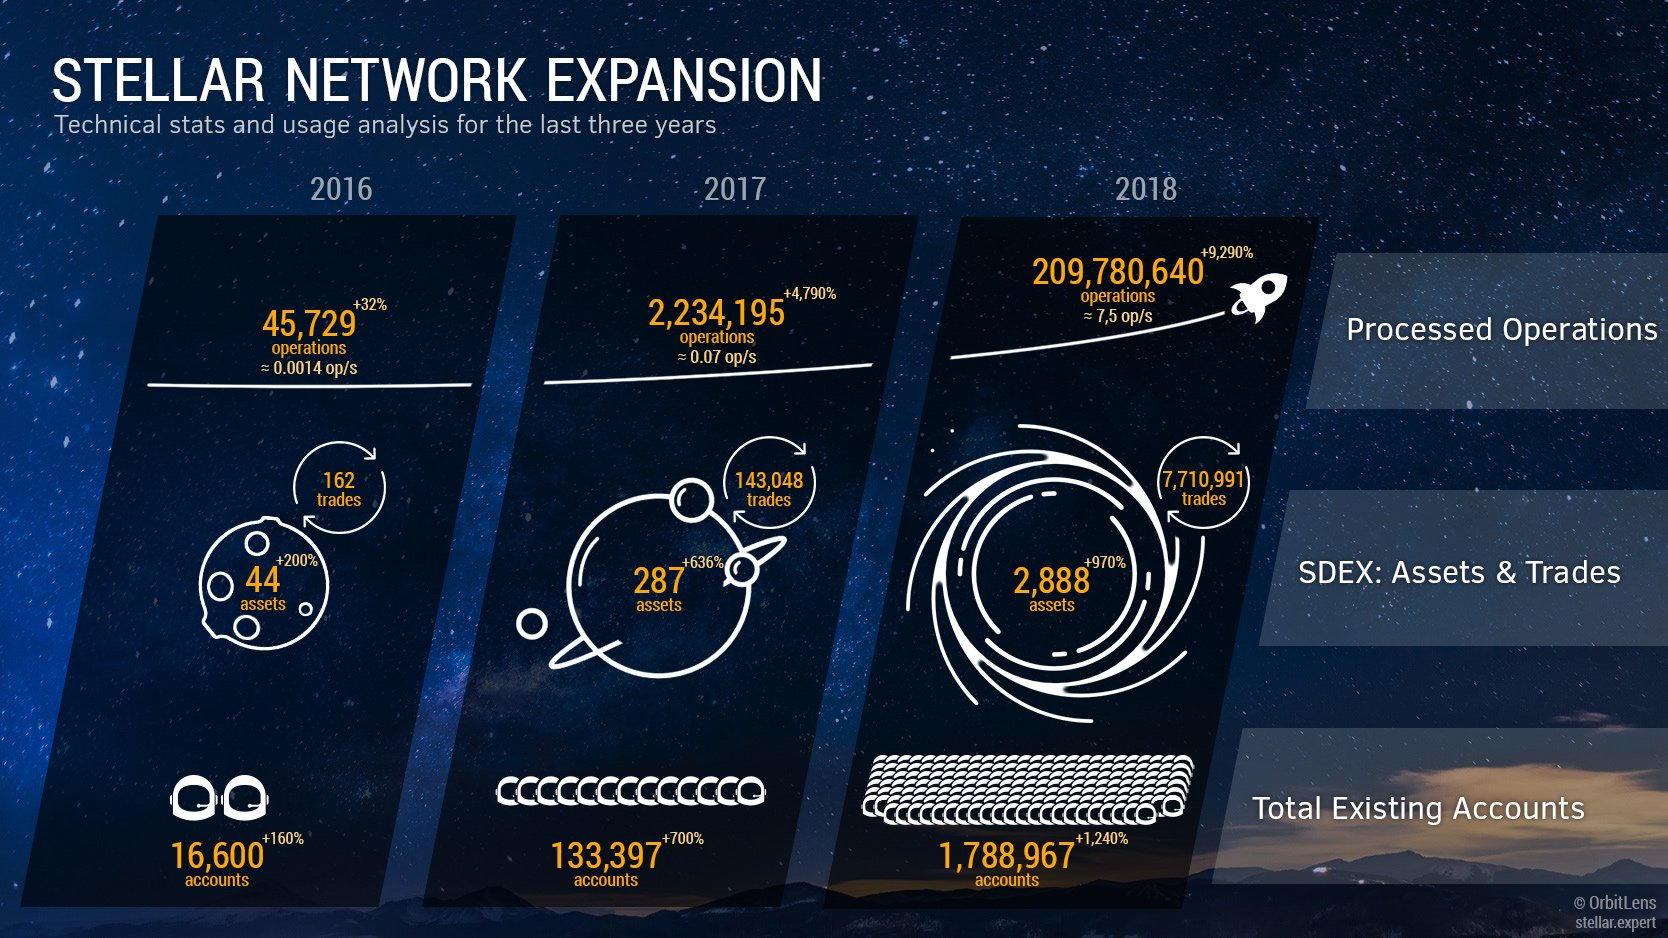 Infographic of Stellar's Network Expansion between 2016 and 2018